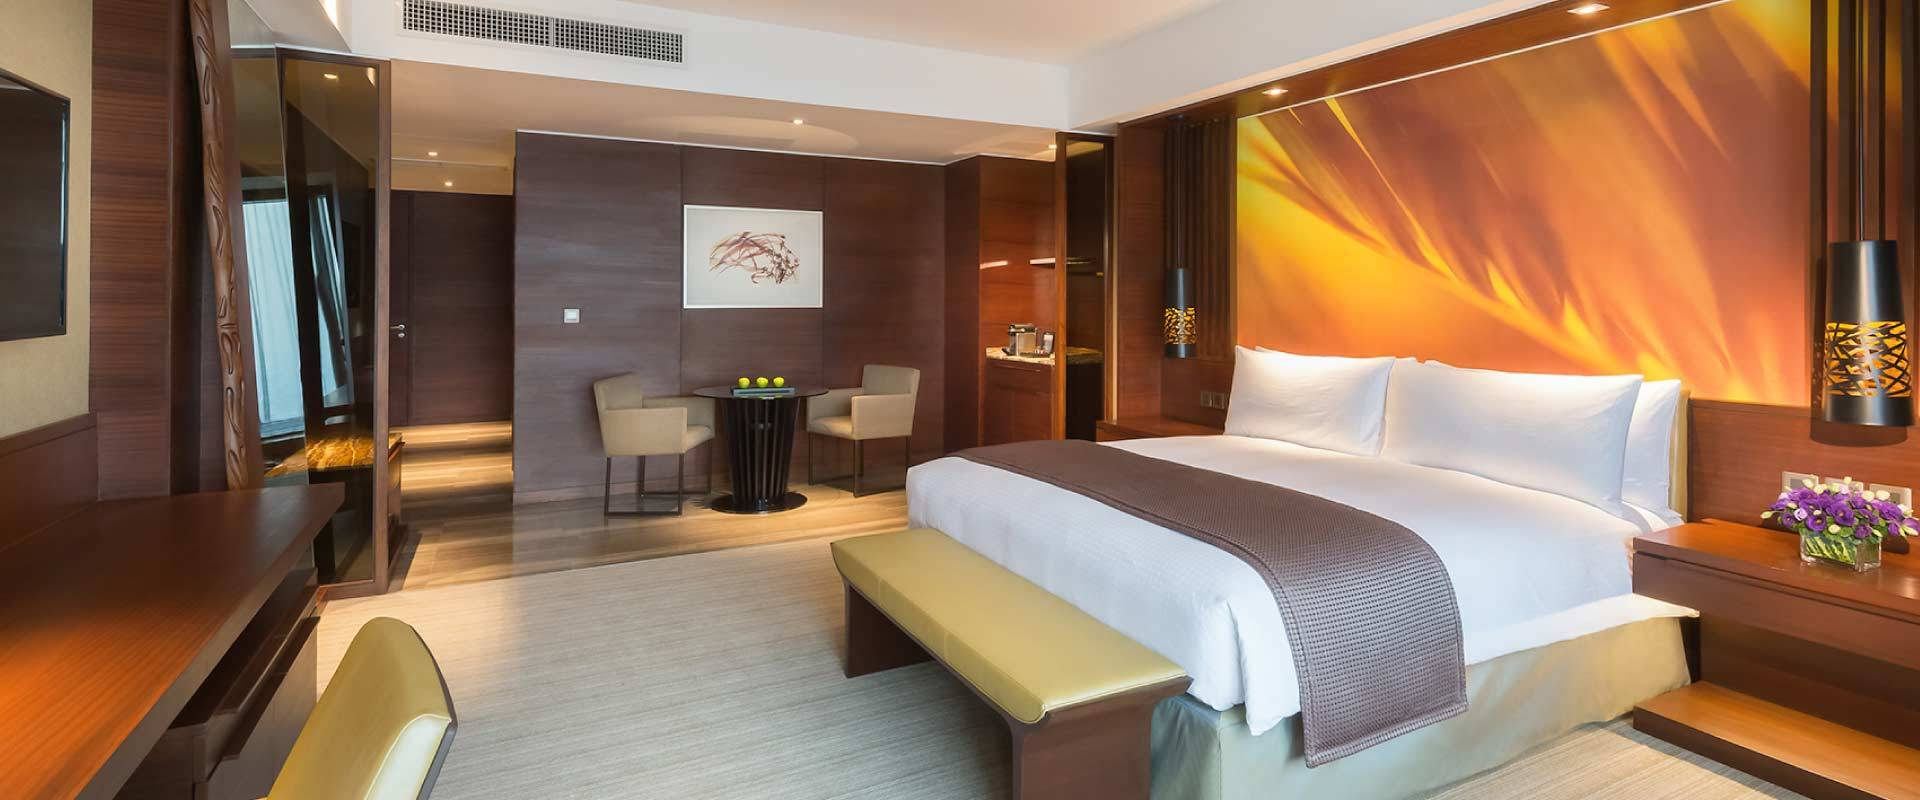 Rooms suites marco polo ortigas manila for Bedroom ideas philippines